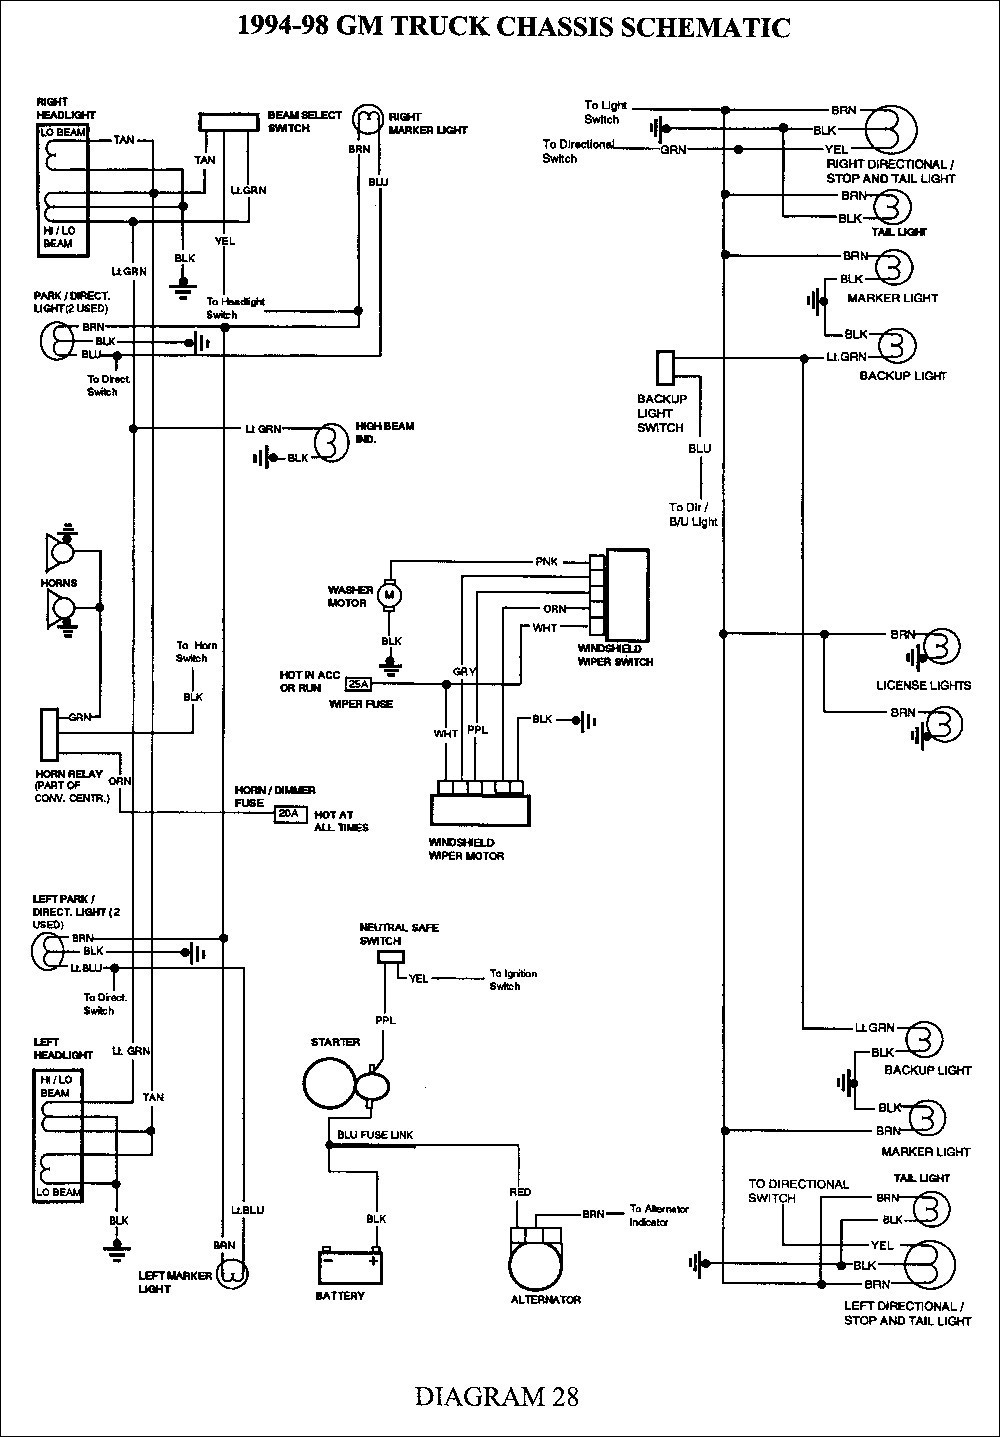 medium resolution of 90 suburban wiring diagram wiring diagram interior wiring diagram for 1990 suburban